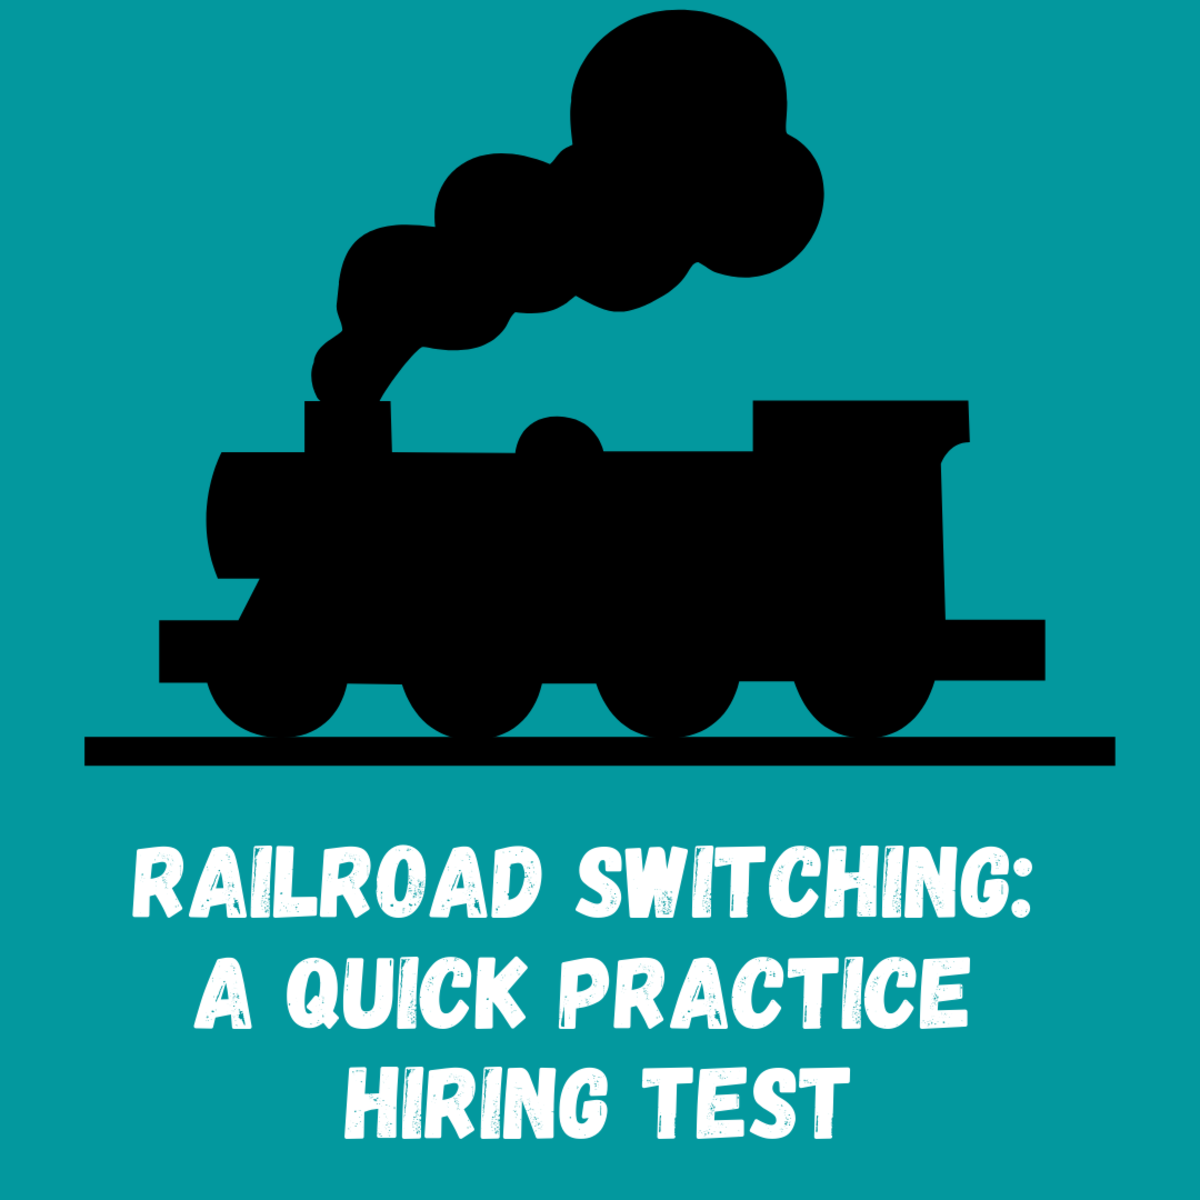 Railroad Switching: A Quick Practice Hiring Test